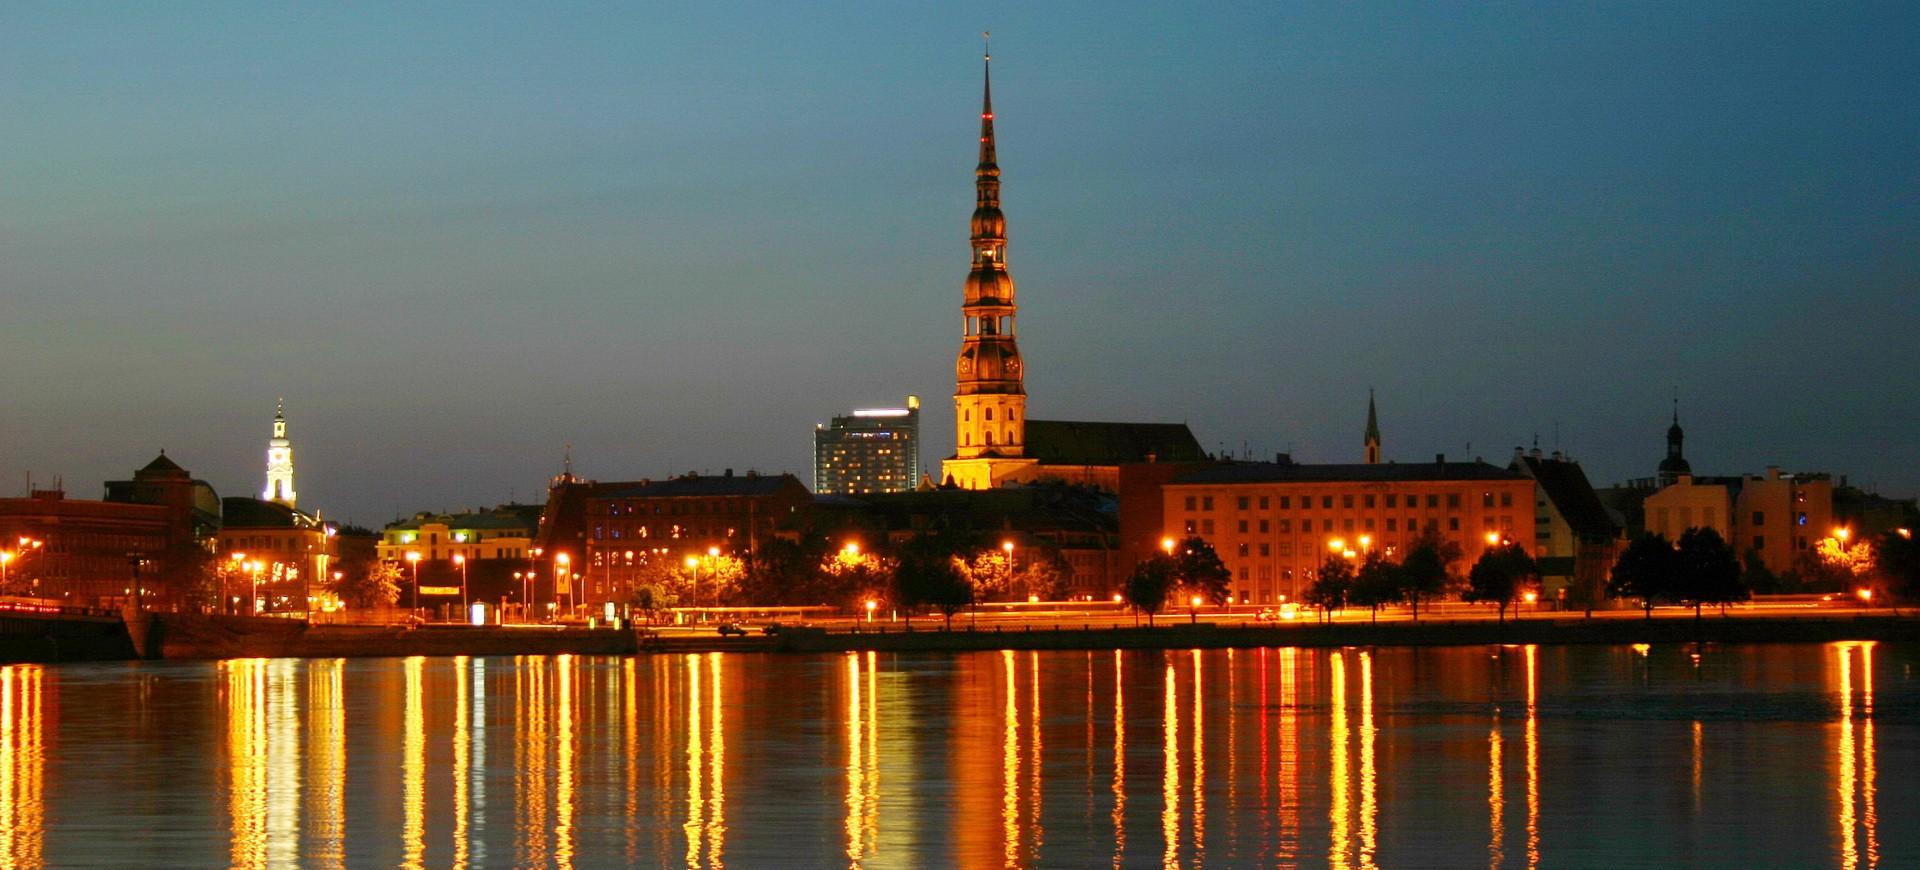 Riga by night en Lettoni aux Pays Baltes